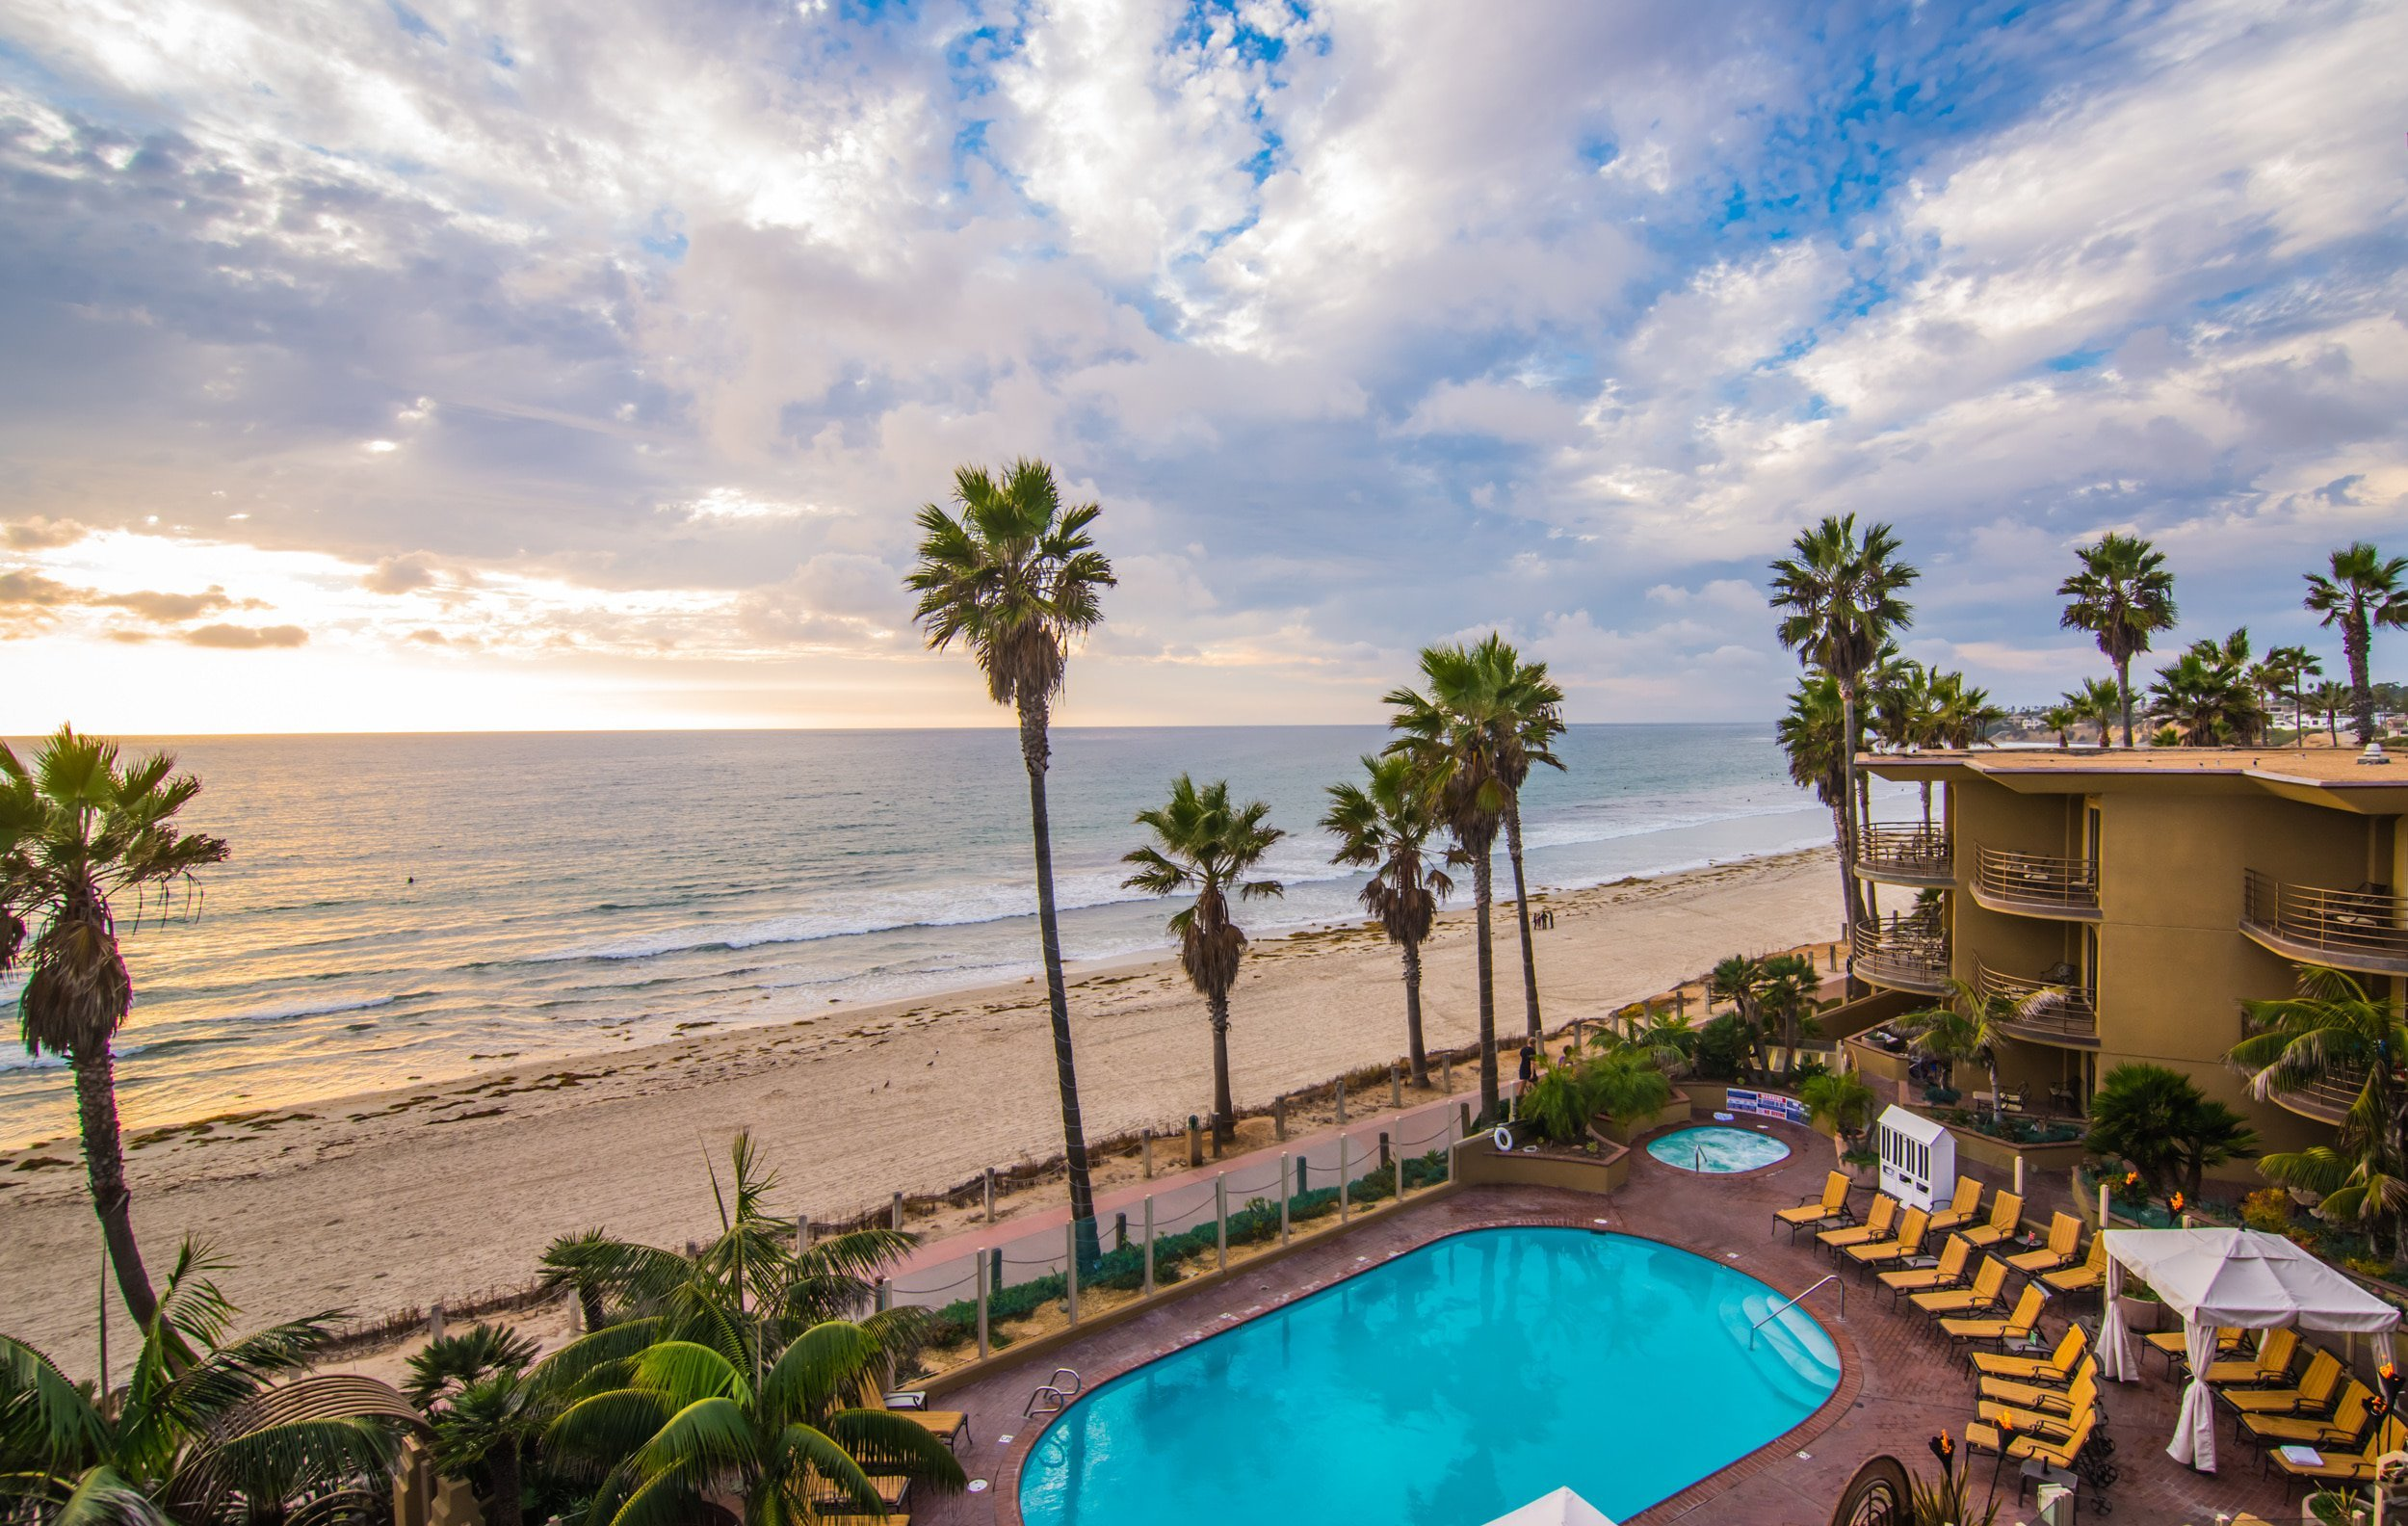 Pacific Beach San Diego hotels: Pacific Terrace Hotel